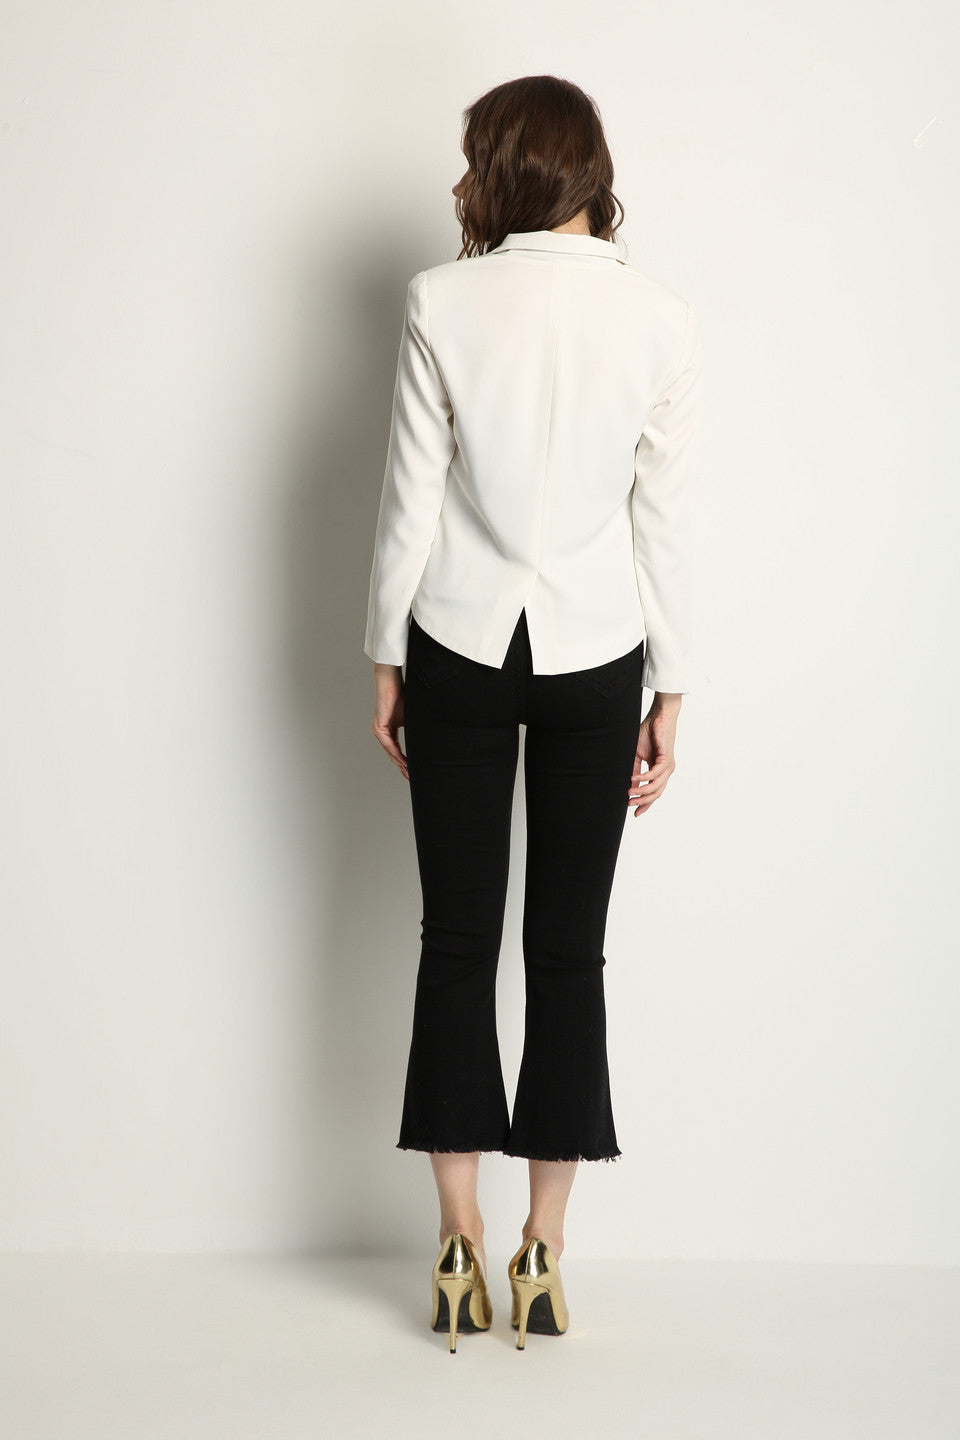 White Blazer With Gold Buttons - GlanceZ   - 4